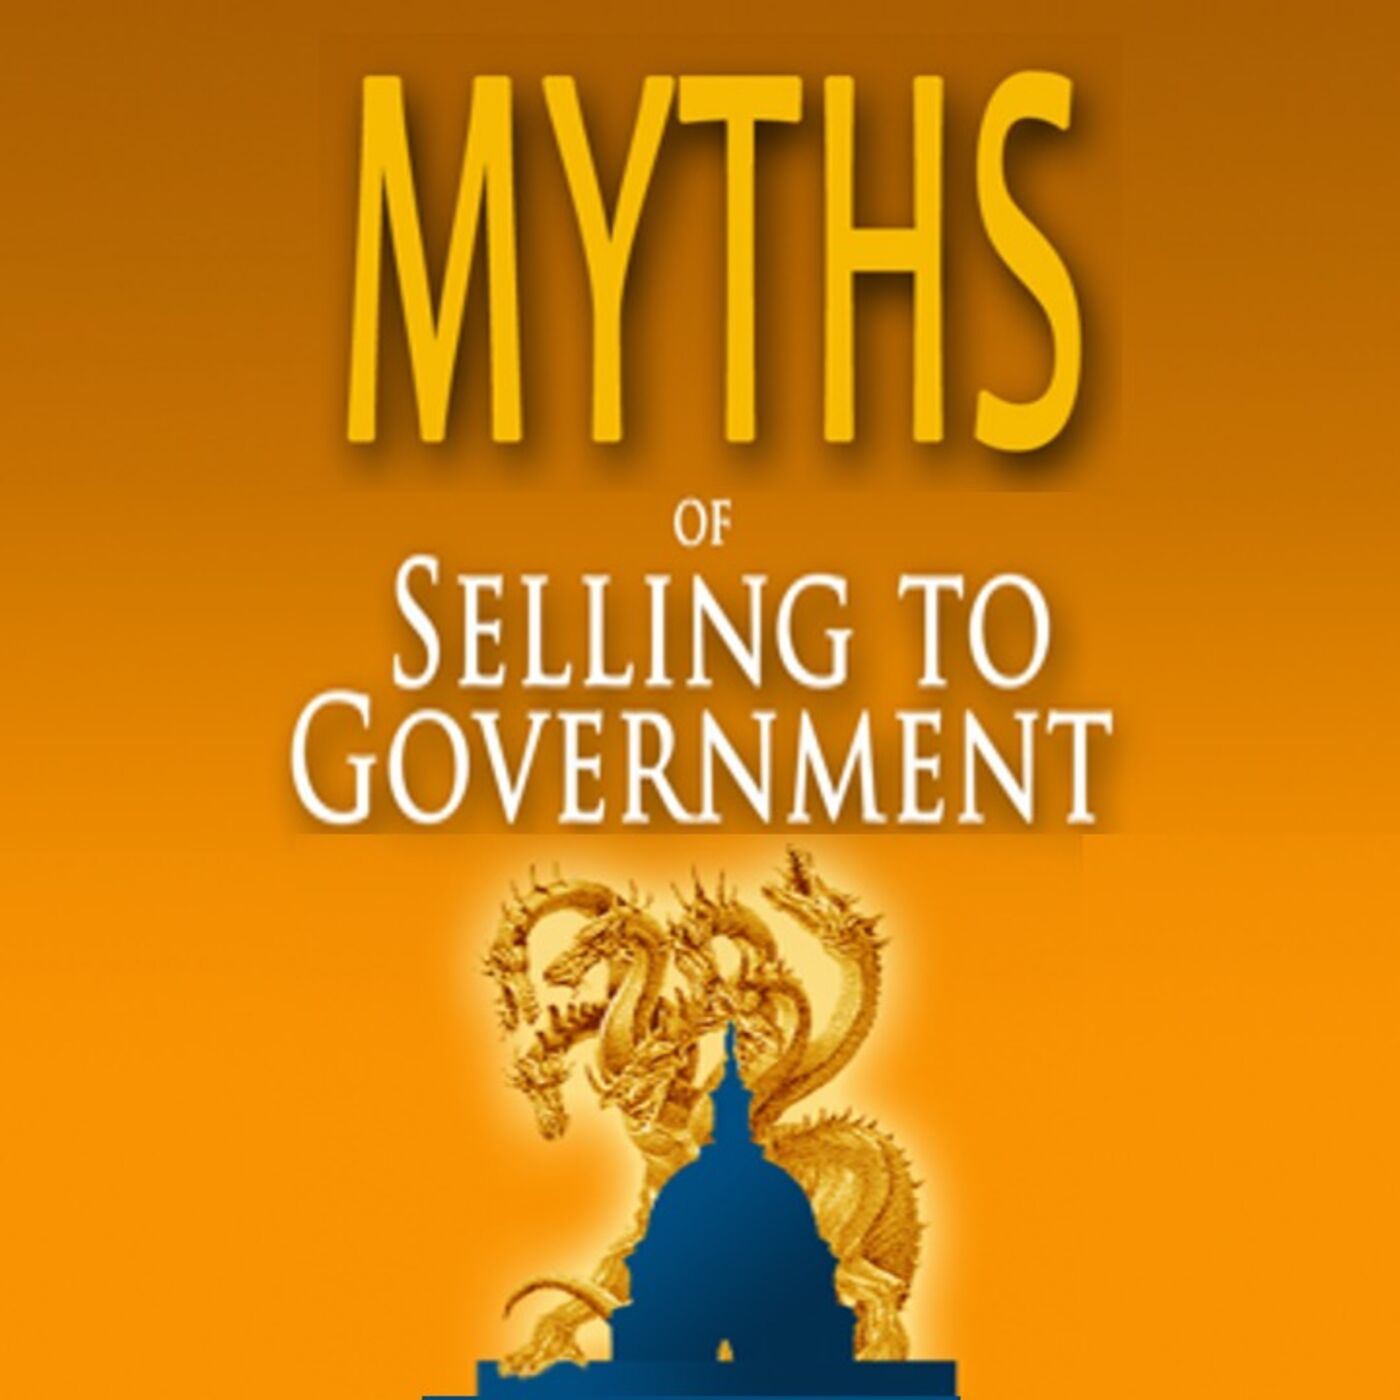 Government Selling Myths Revealed